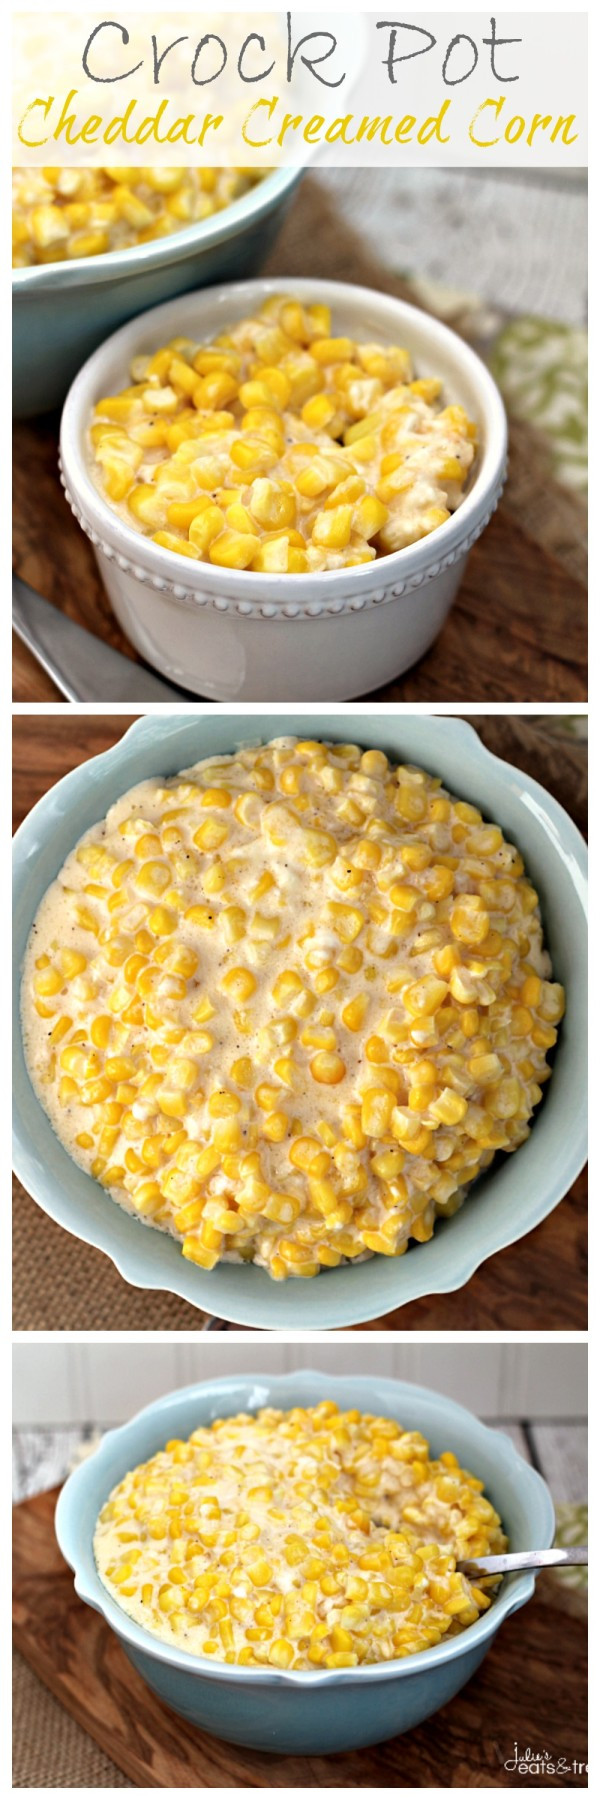 Crock Pot Main Dishes  Crock Pot Cheddar Creamed Corn The perfect easy side